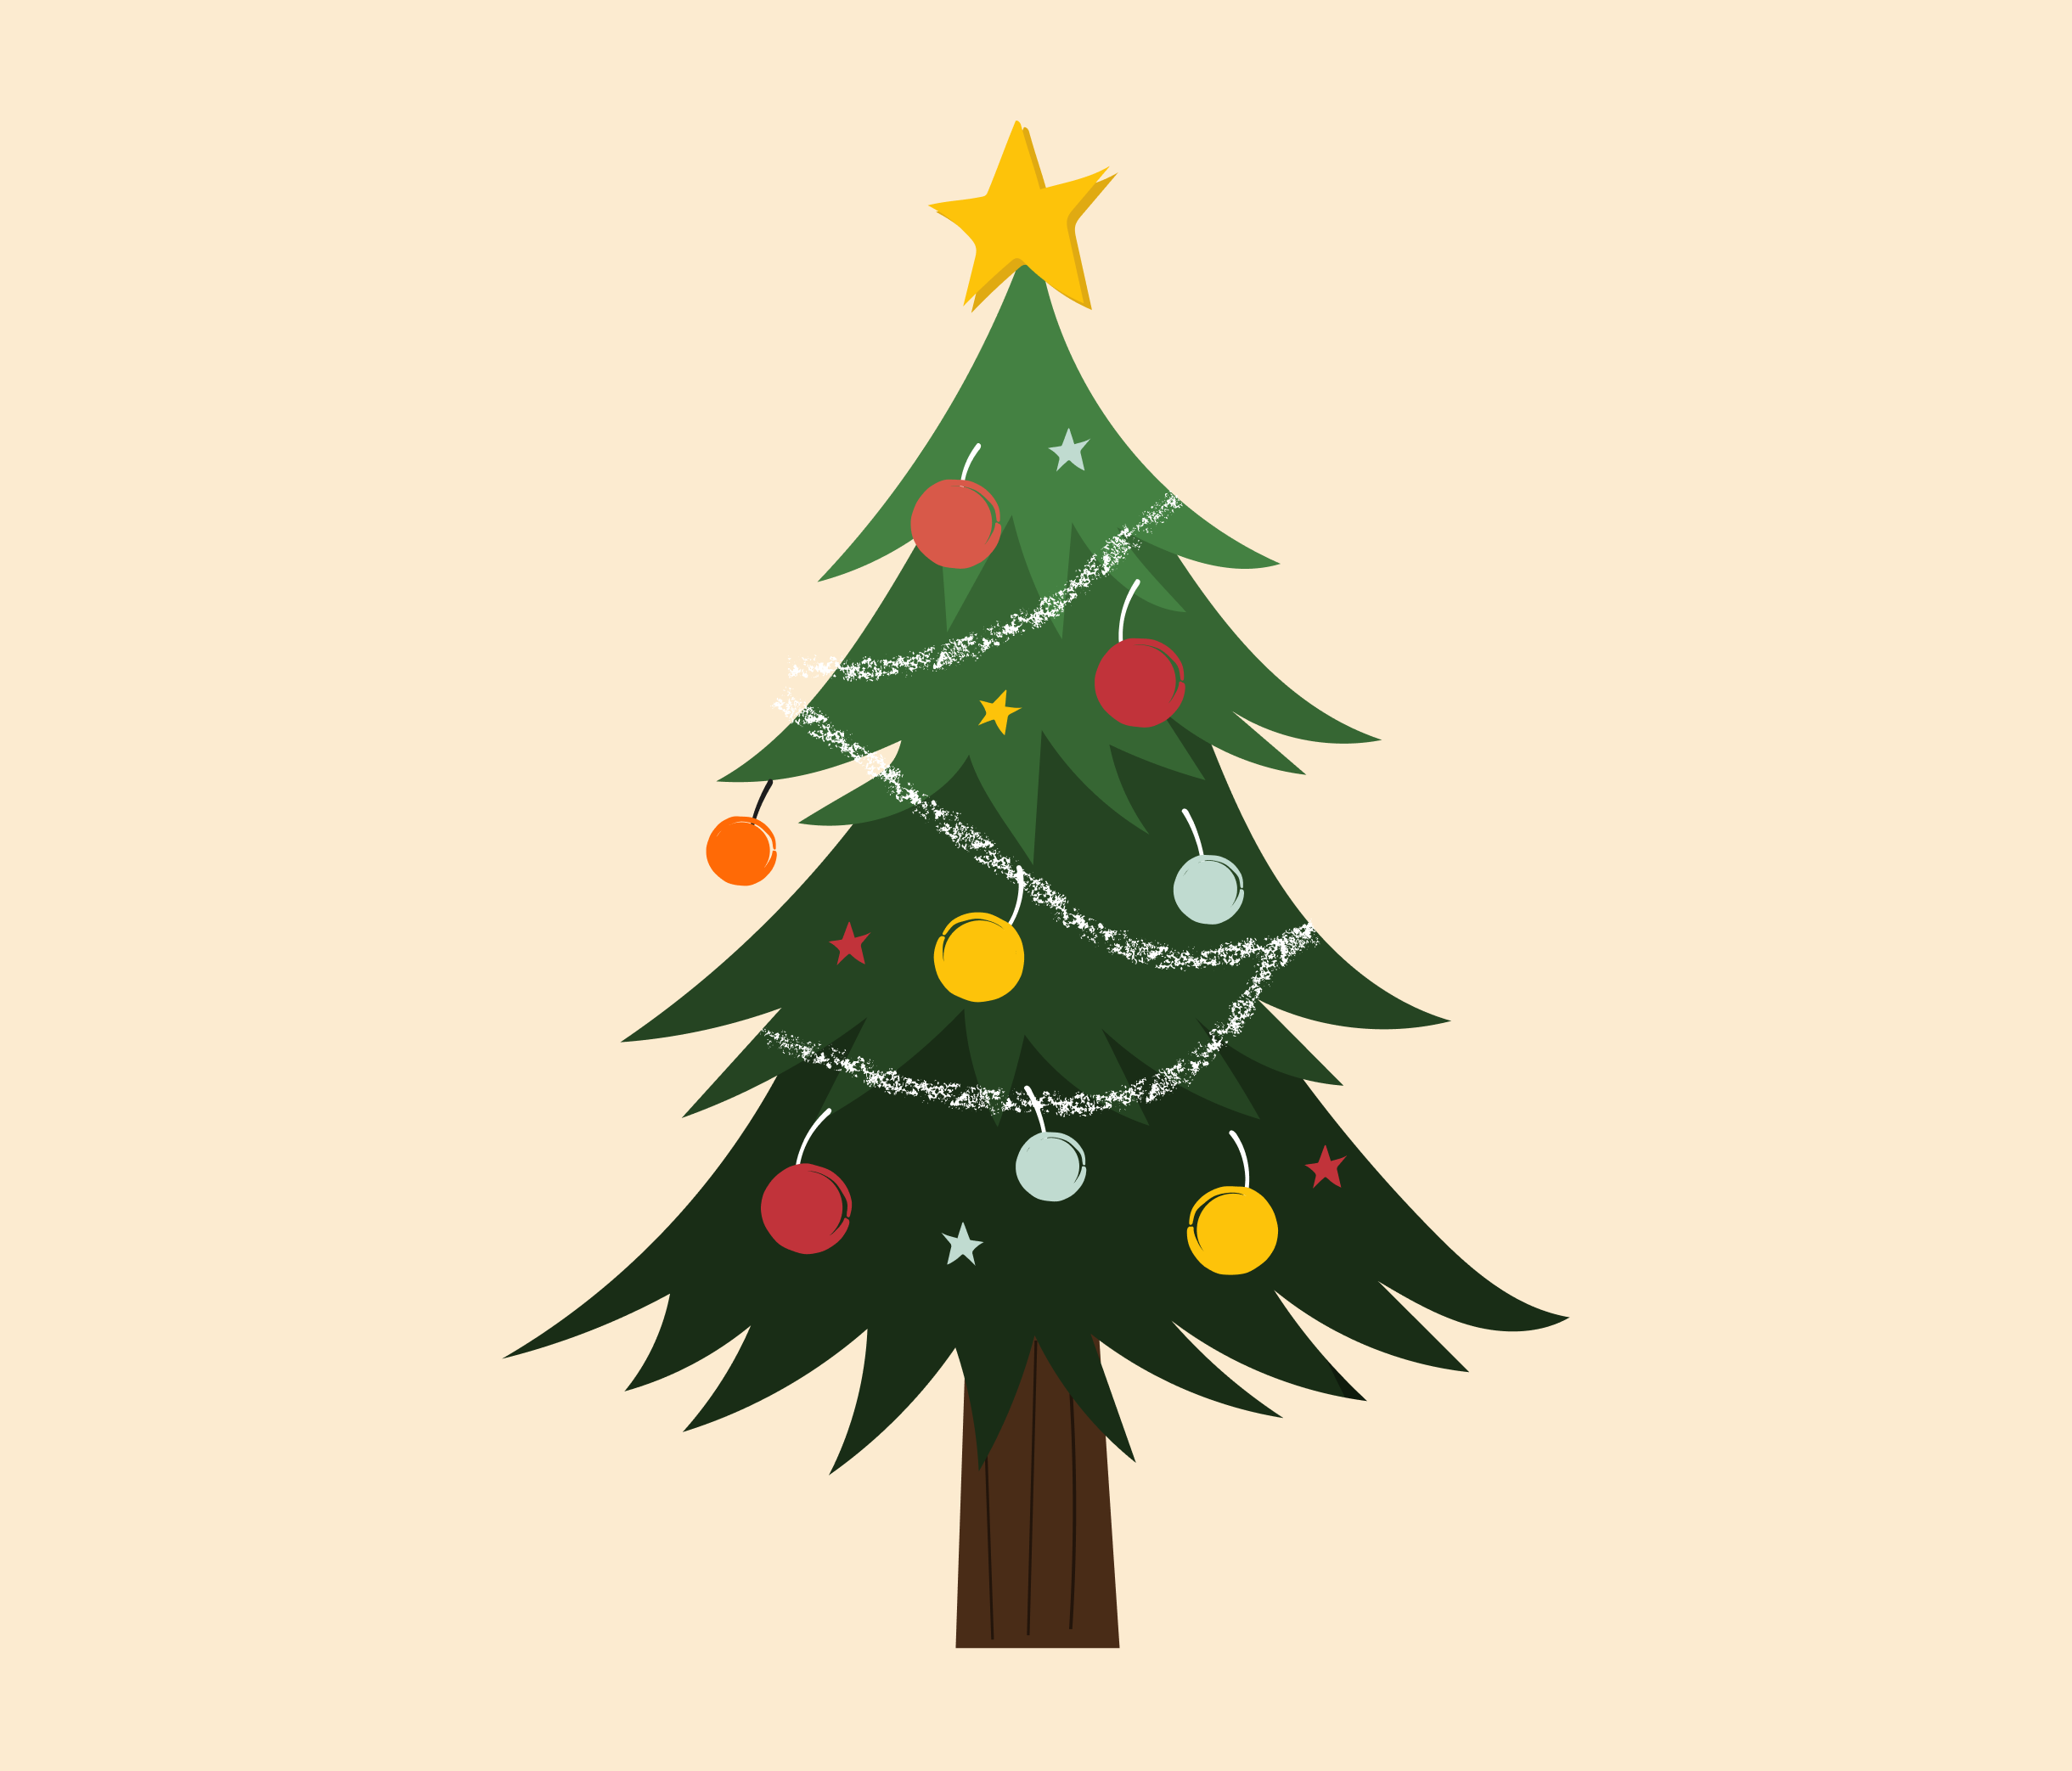 Christmas Tree Graphic Design for PowerPoint